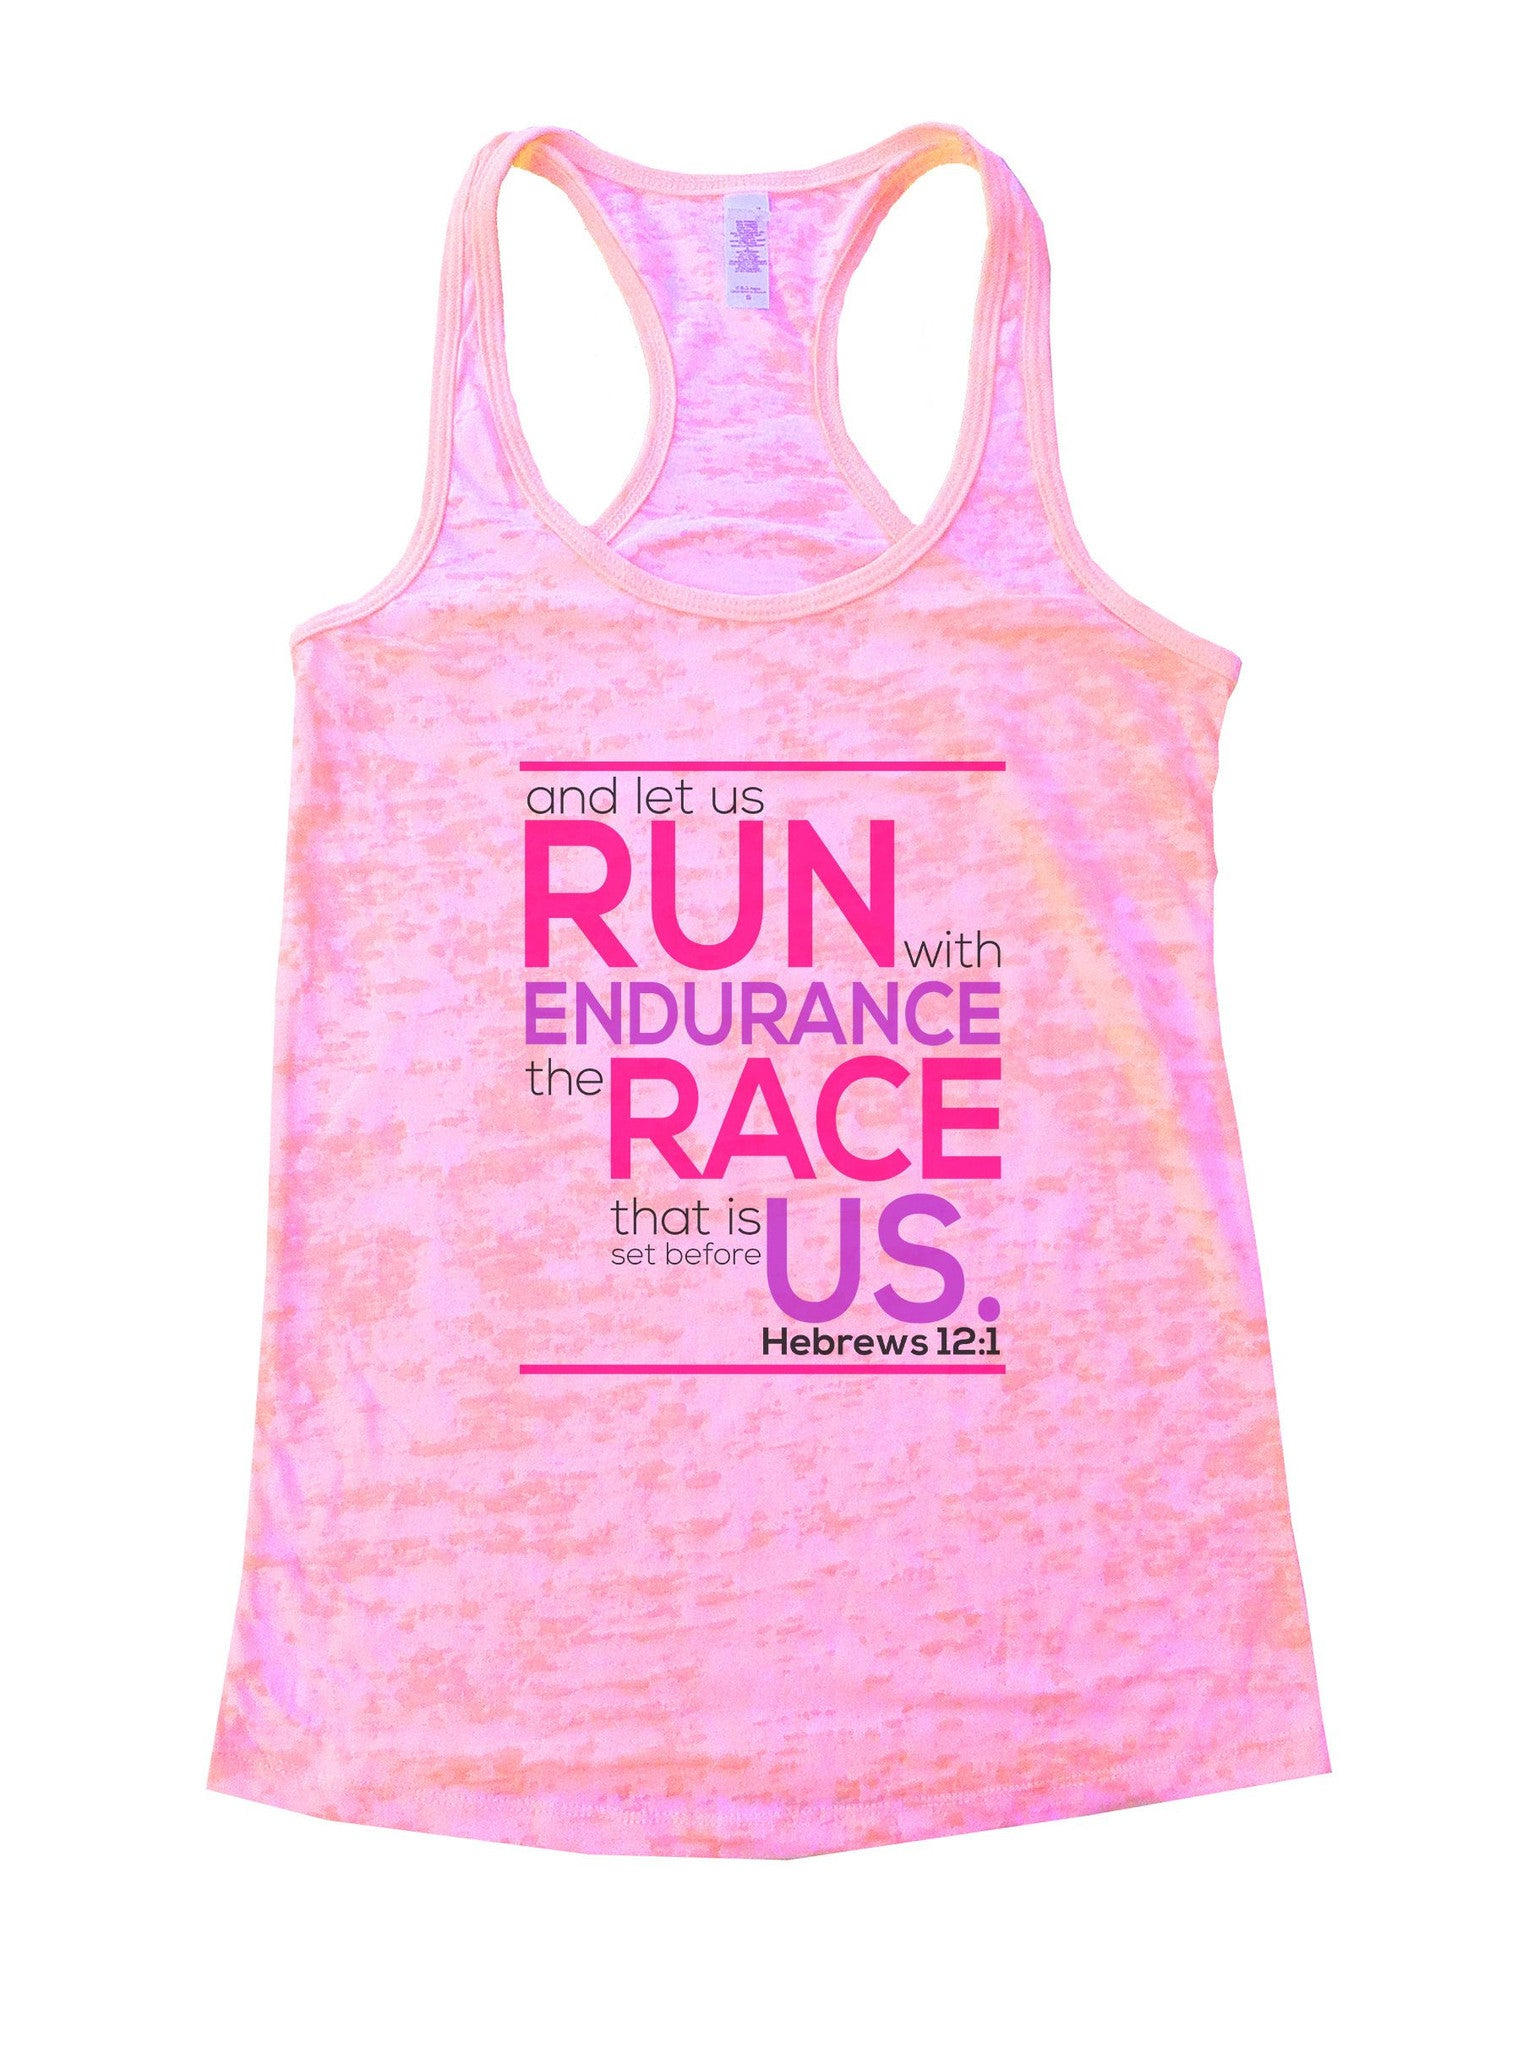 Run Endurance Race Us Burnout Tank Top By BurnoutTankTops.com - 1036 - Funny Shirts Tank Tops Burnouts and Triblends  - 2